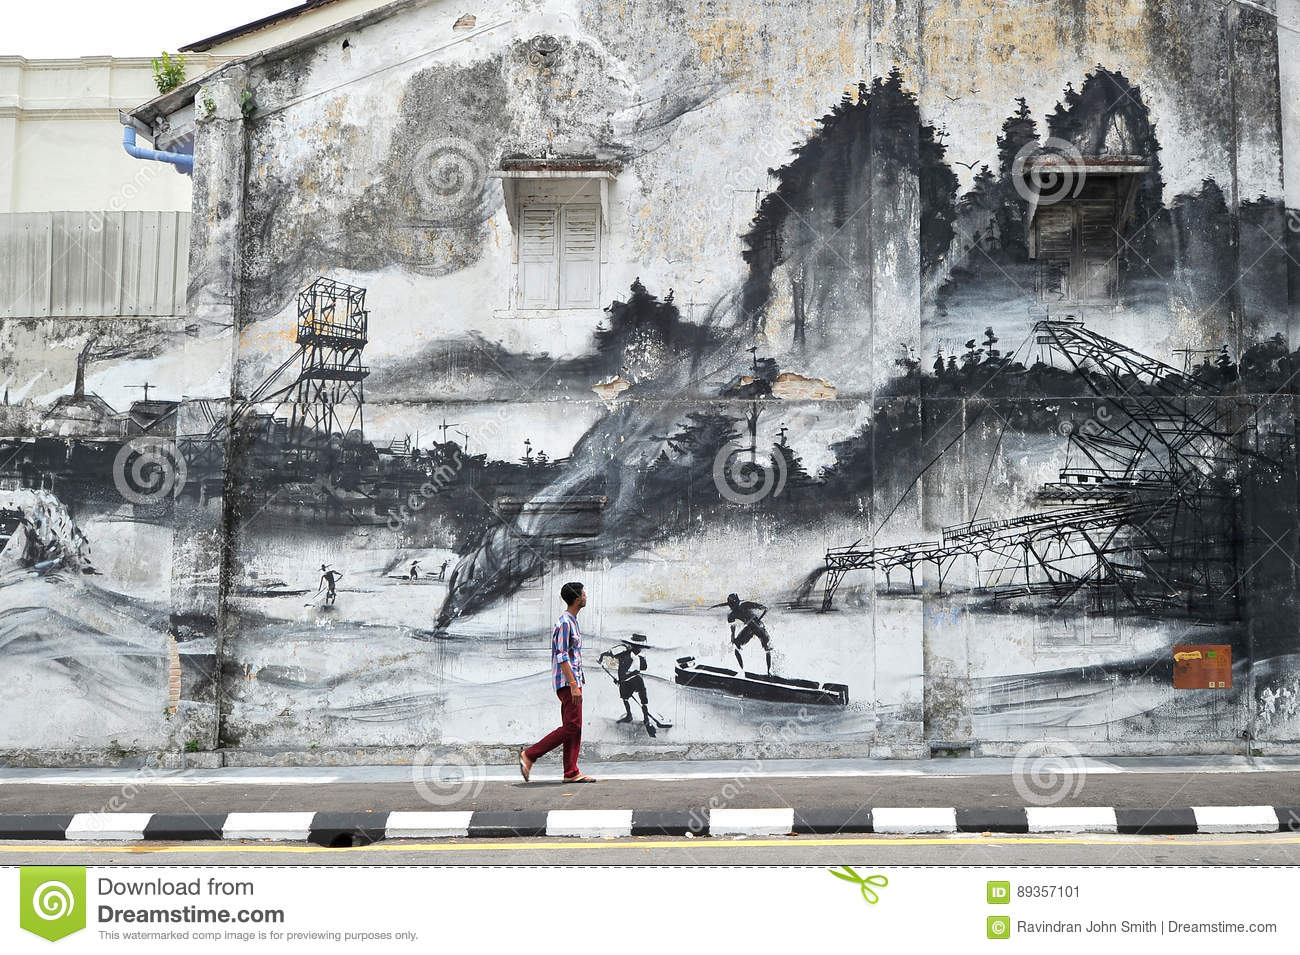 Ipoh wall art mural evolution editorial photo image for 7 mural ipoh